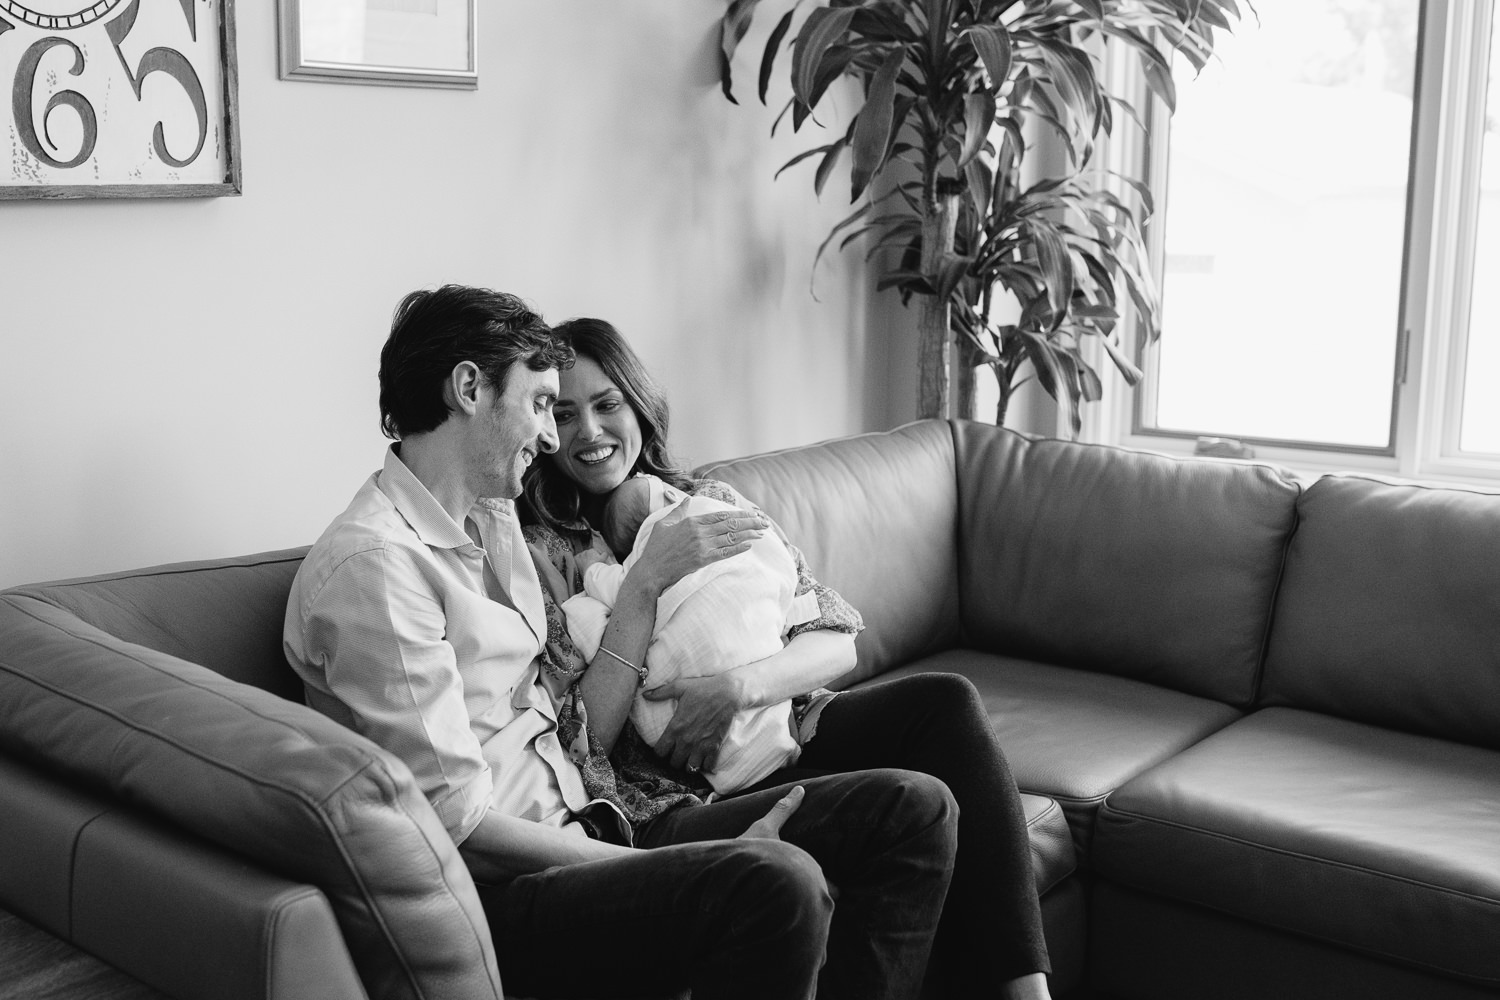 new parents sitting on couch holding 2 month old baby daughter, laughing - Newmarket In-Home Photography